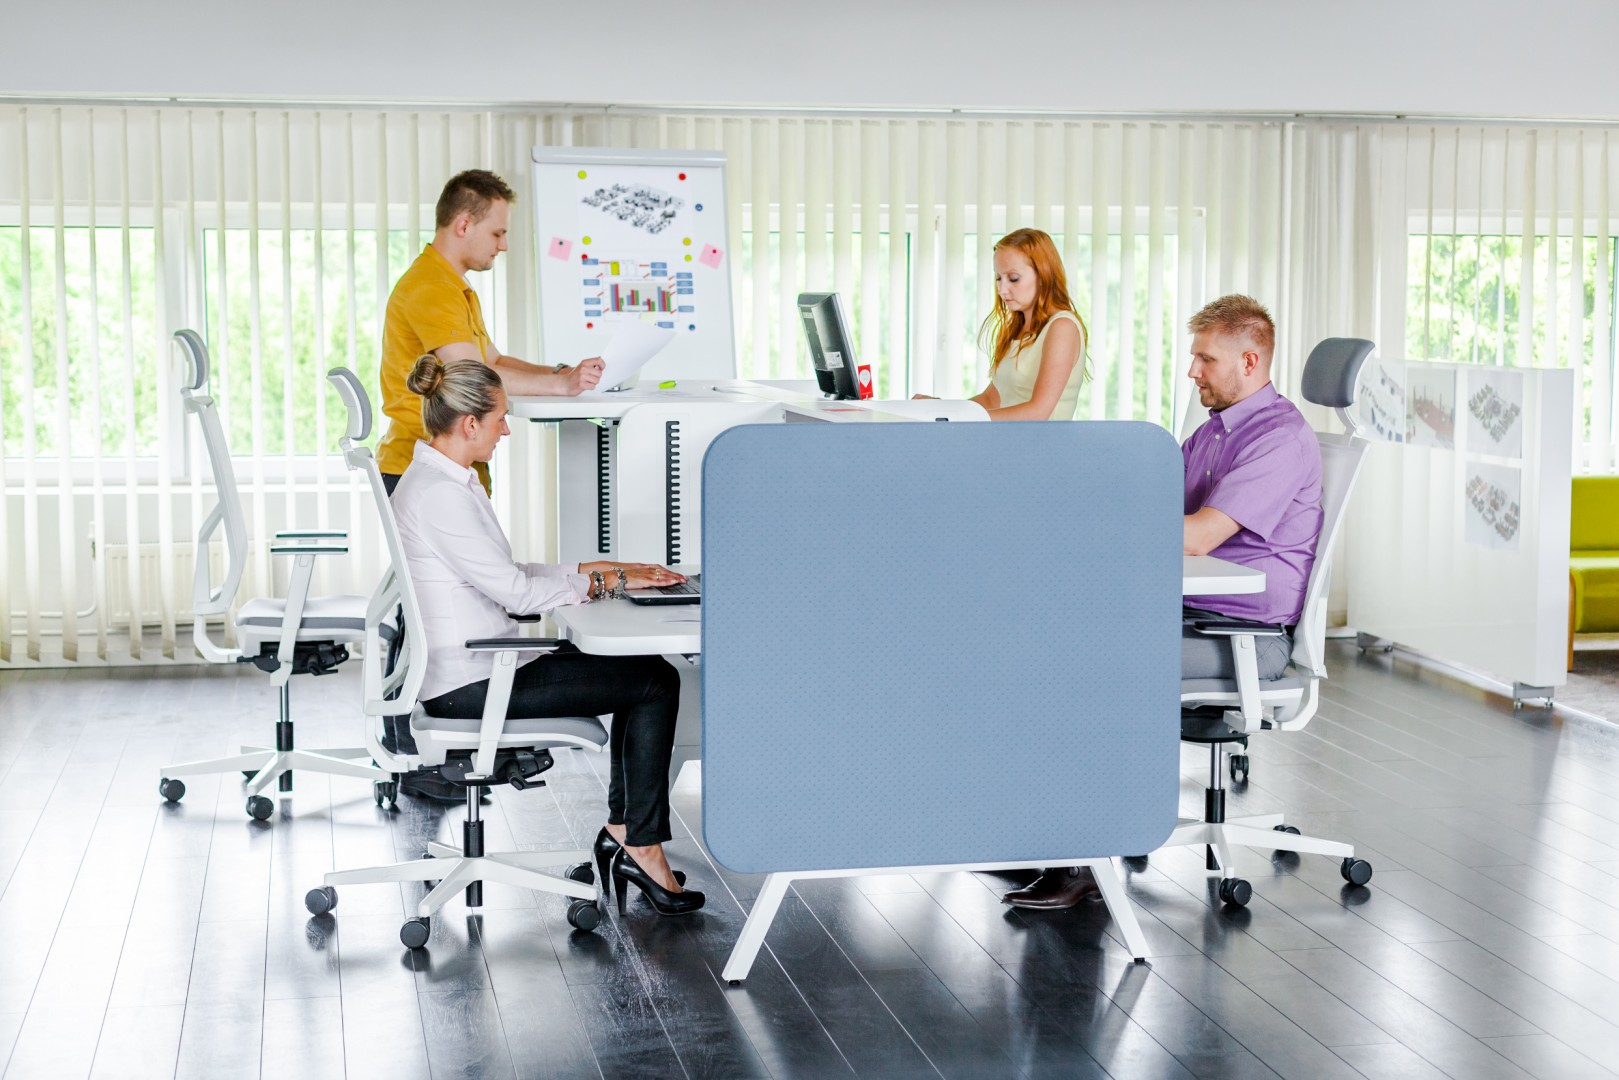 System Stand Up firmy Mikomax Smart Office. Fot. Mikomax Smart Office